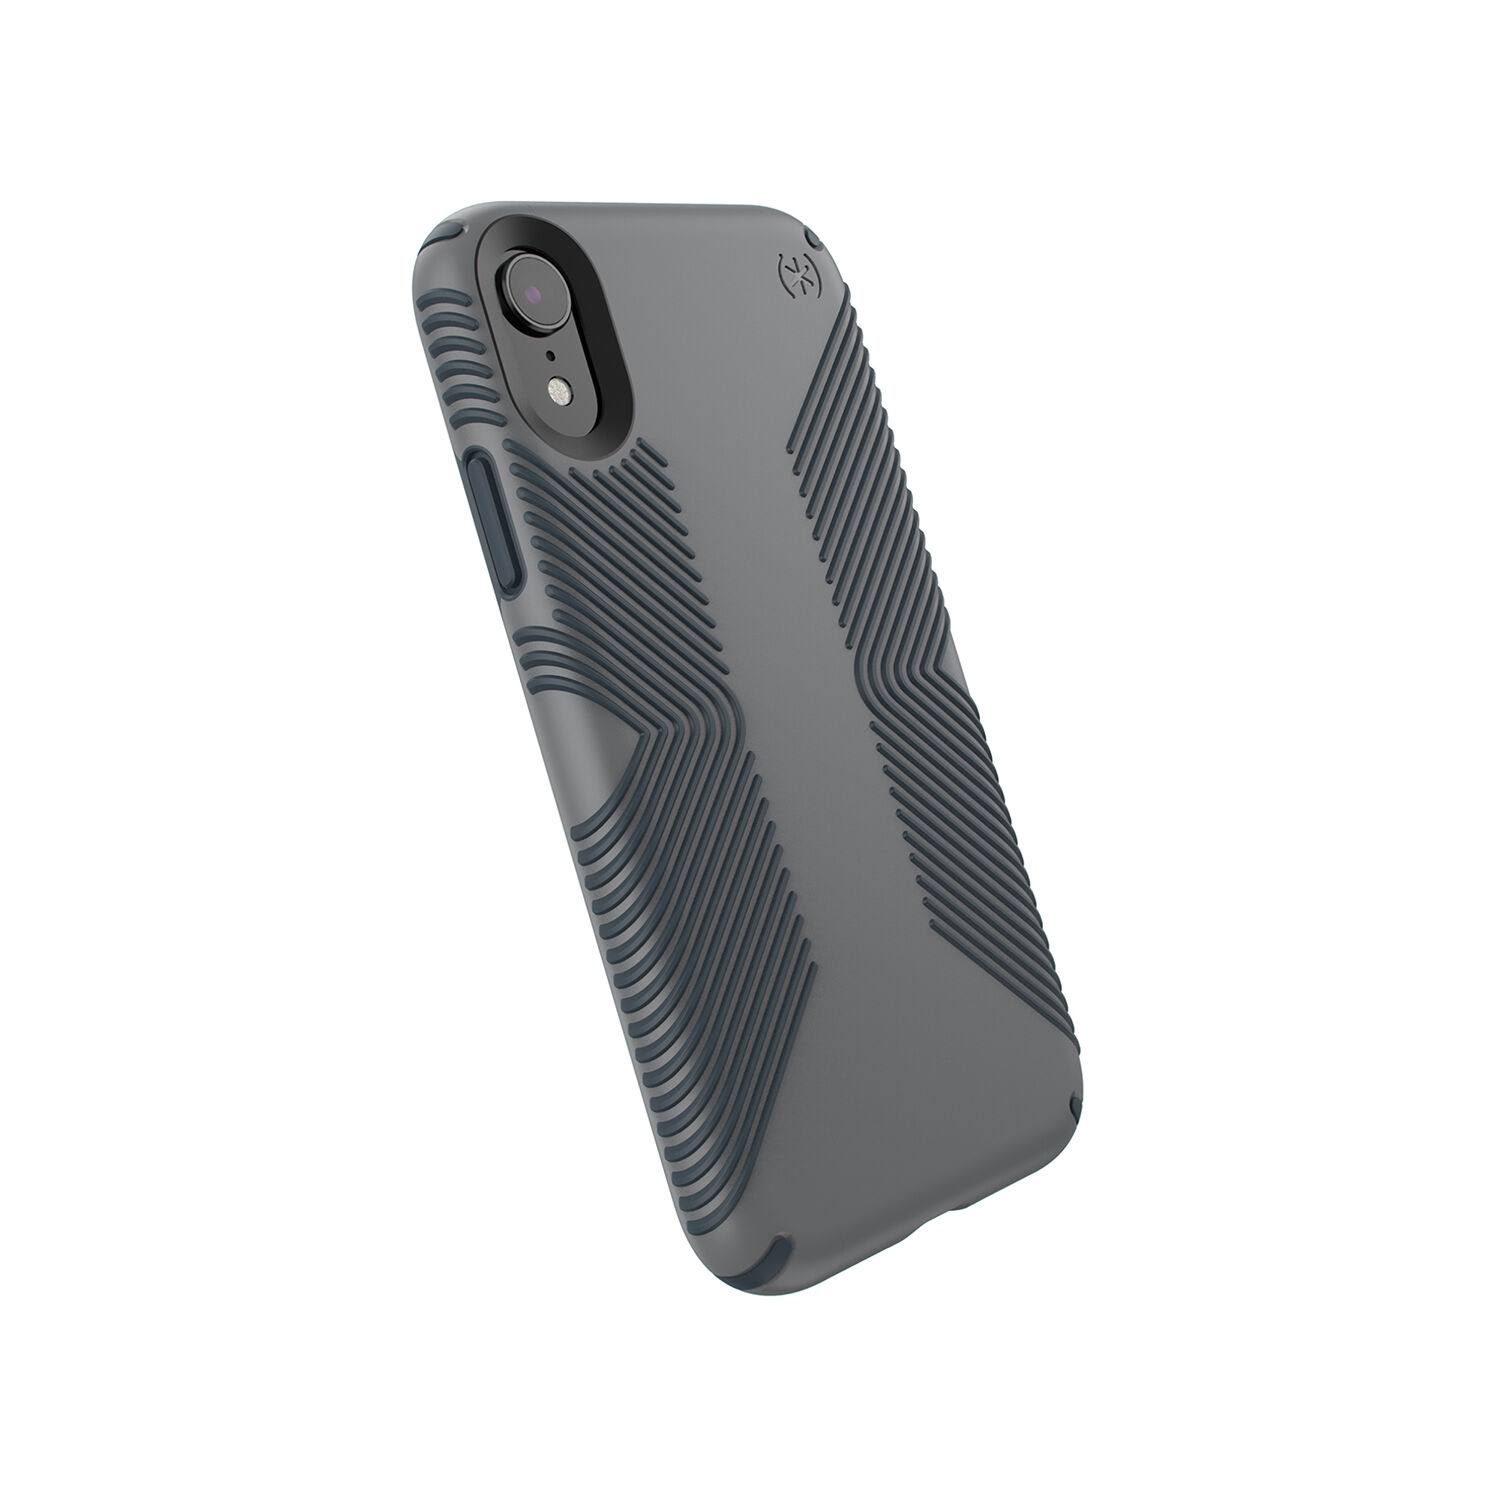 Speck Presidio Grip Case For iPhone XR - Graphite